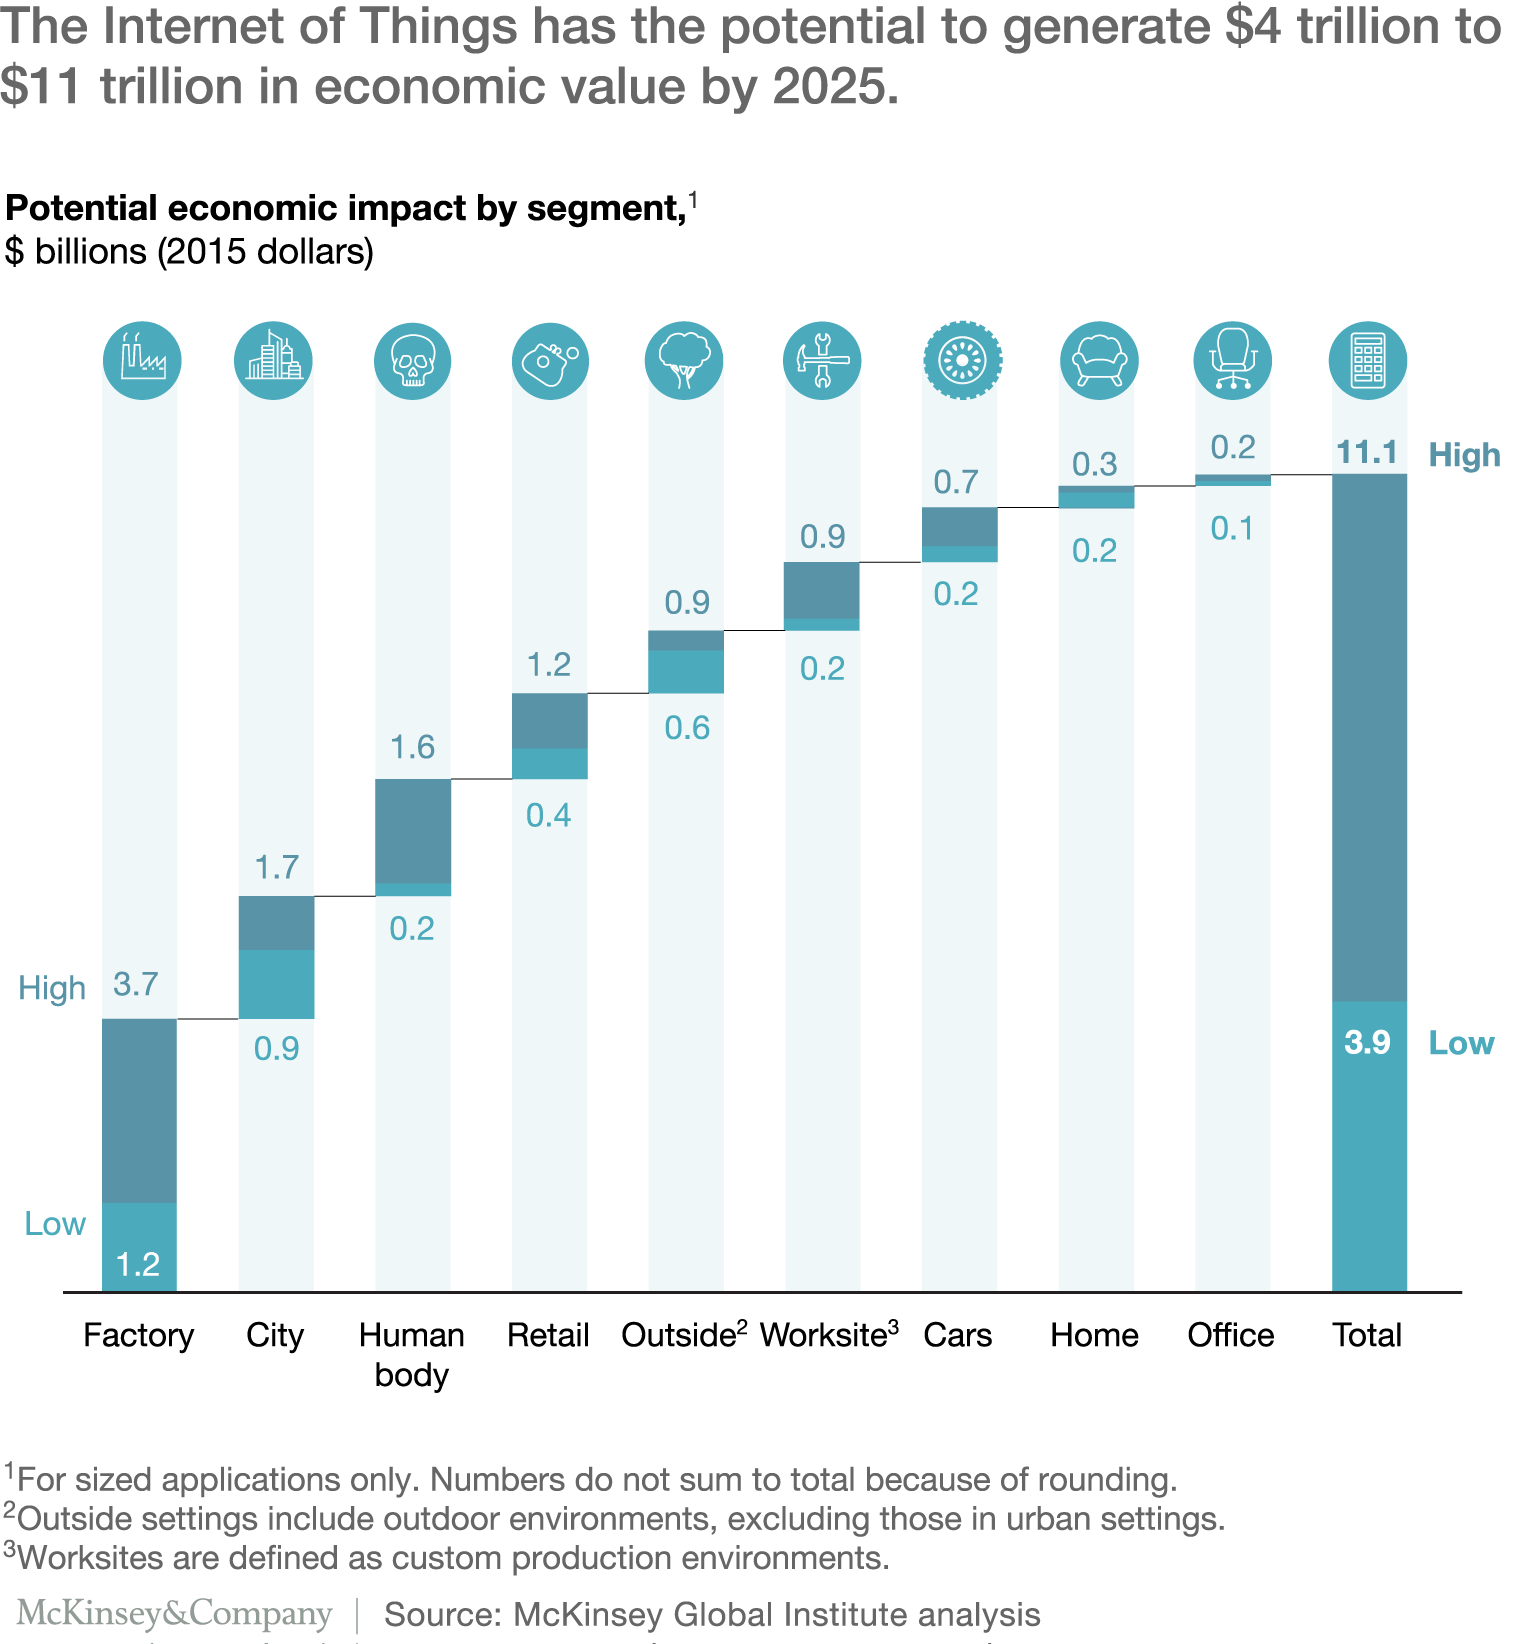 The Internet of Things may generate about $4 trillion to $11 trillion in economic value by 2025.